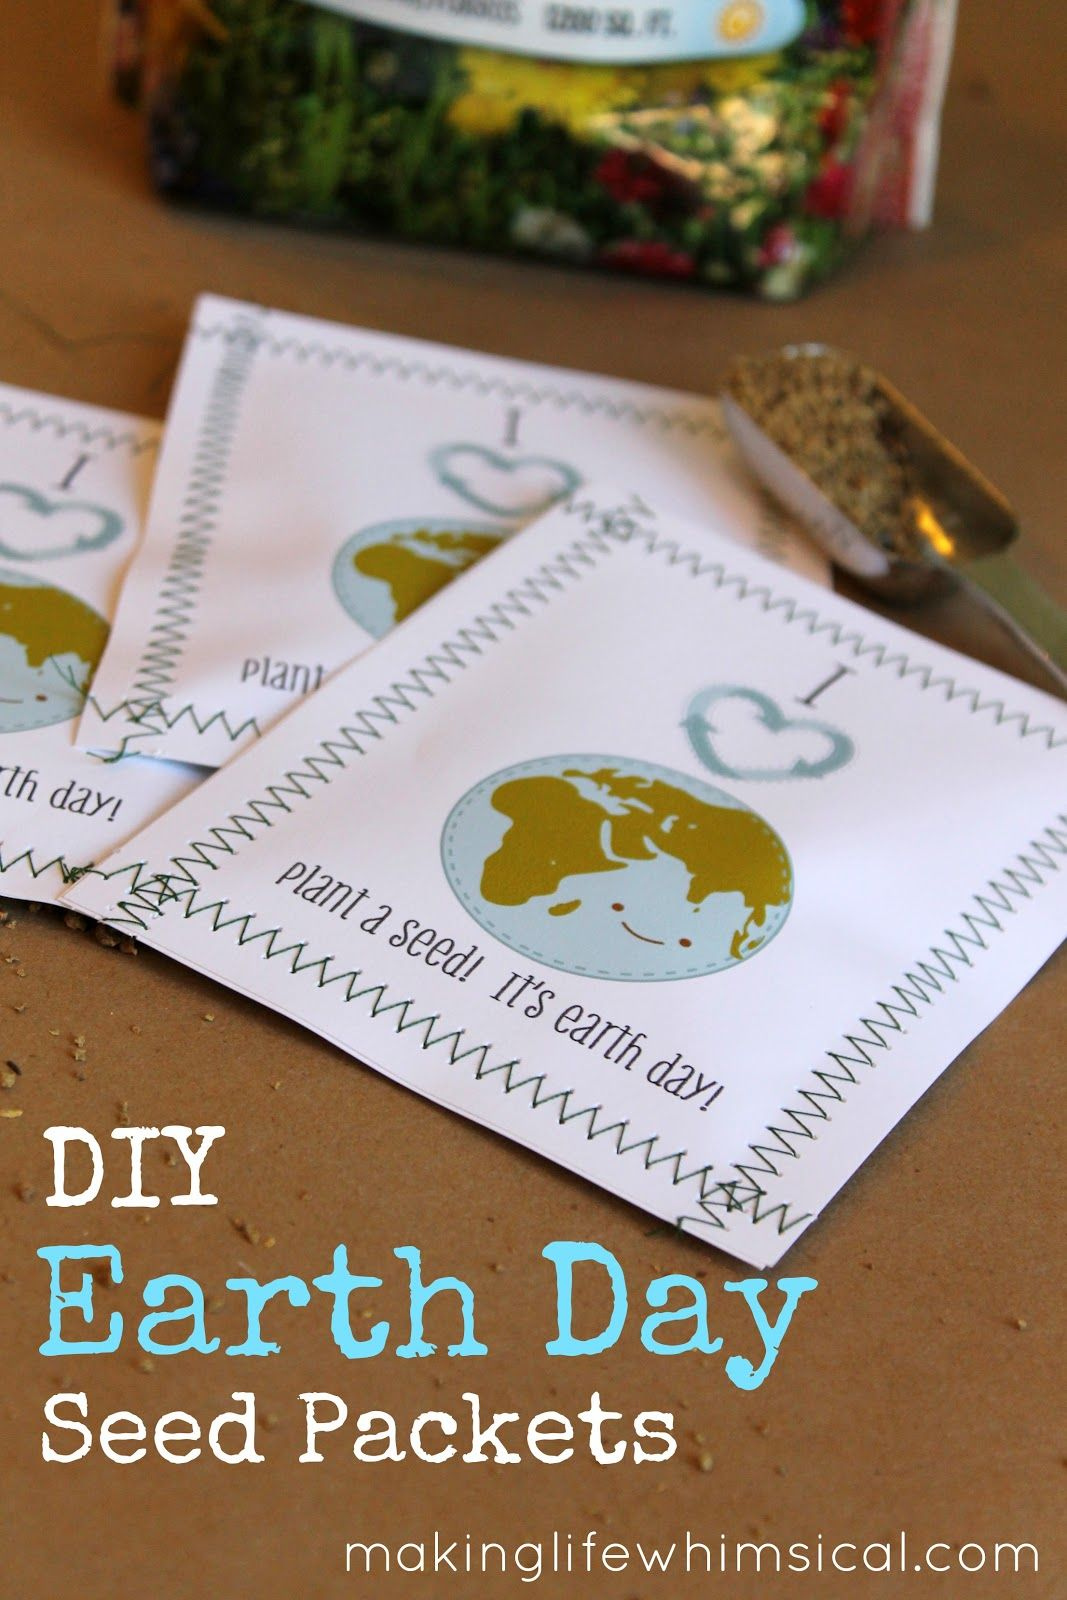 Diy Easy Earth Day Seed Packets With Free Printable Earthday Kinglifewhimsical